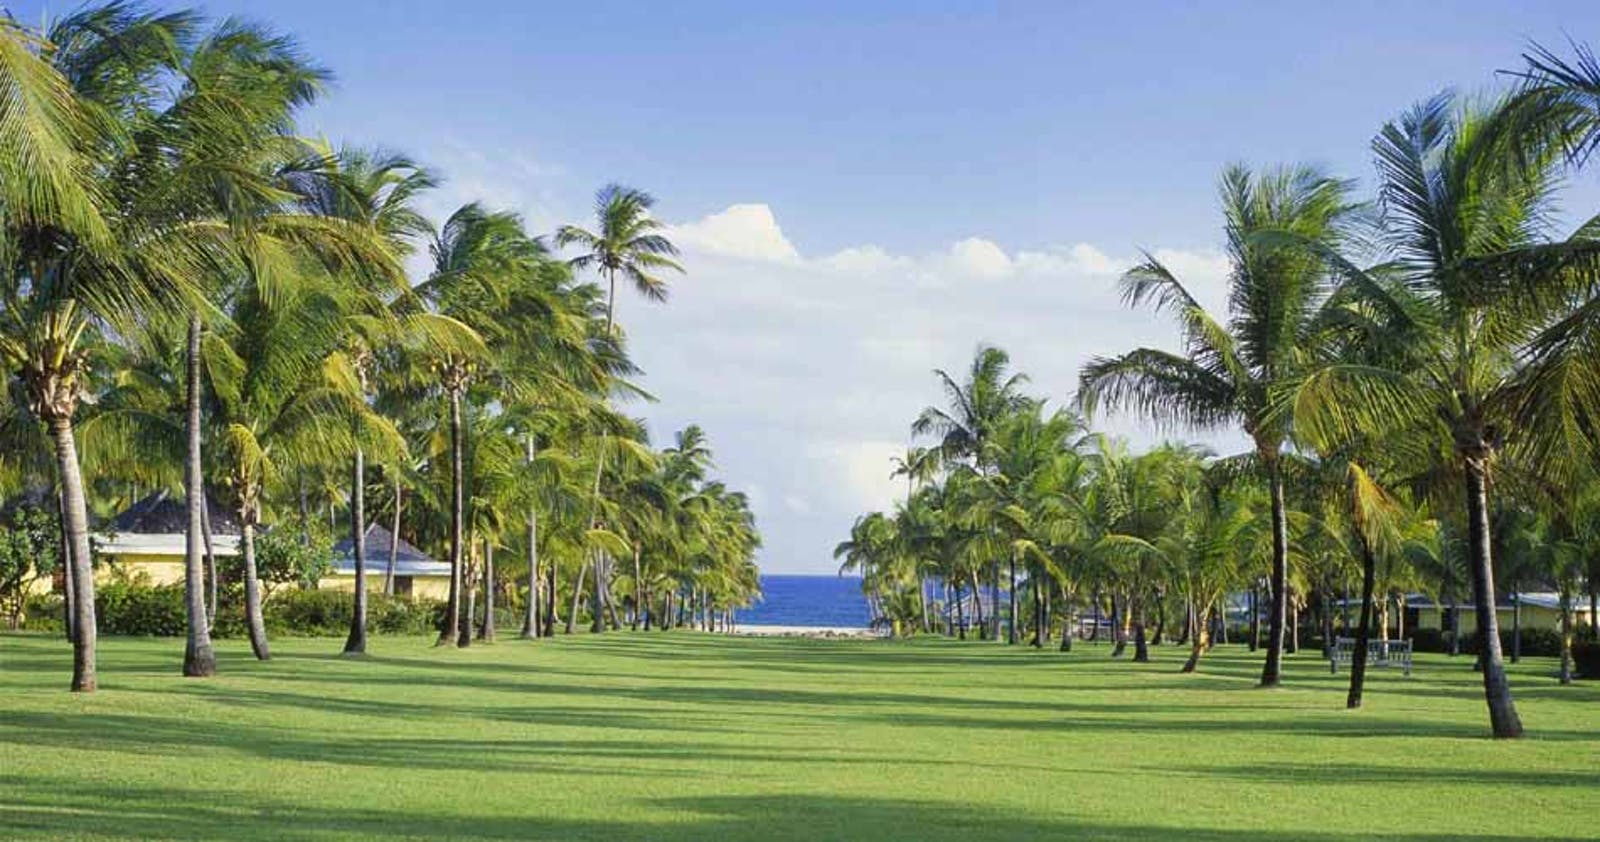 Picturesque Grounds of Nisbet Plantation Beach Club, Nevis